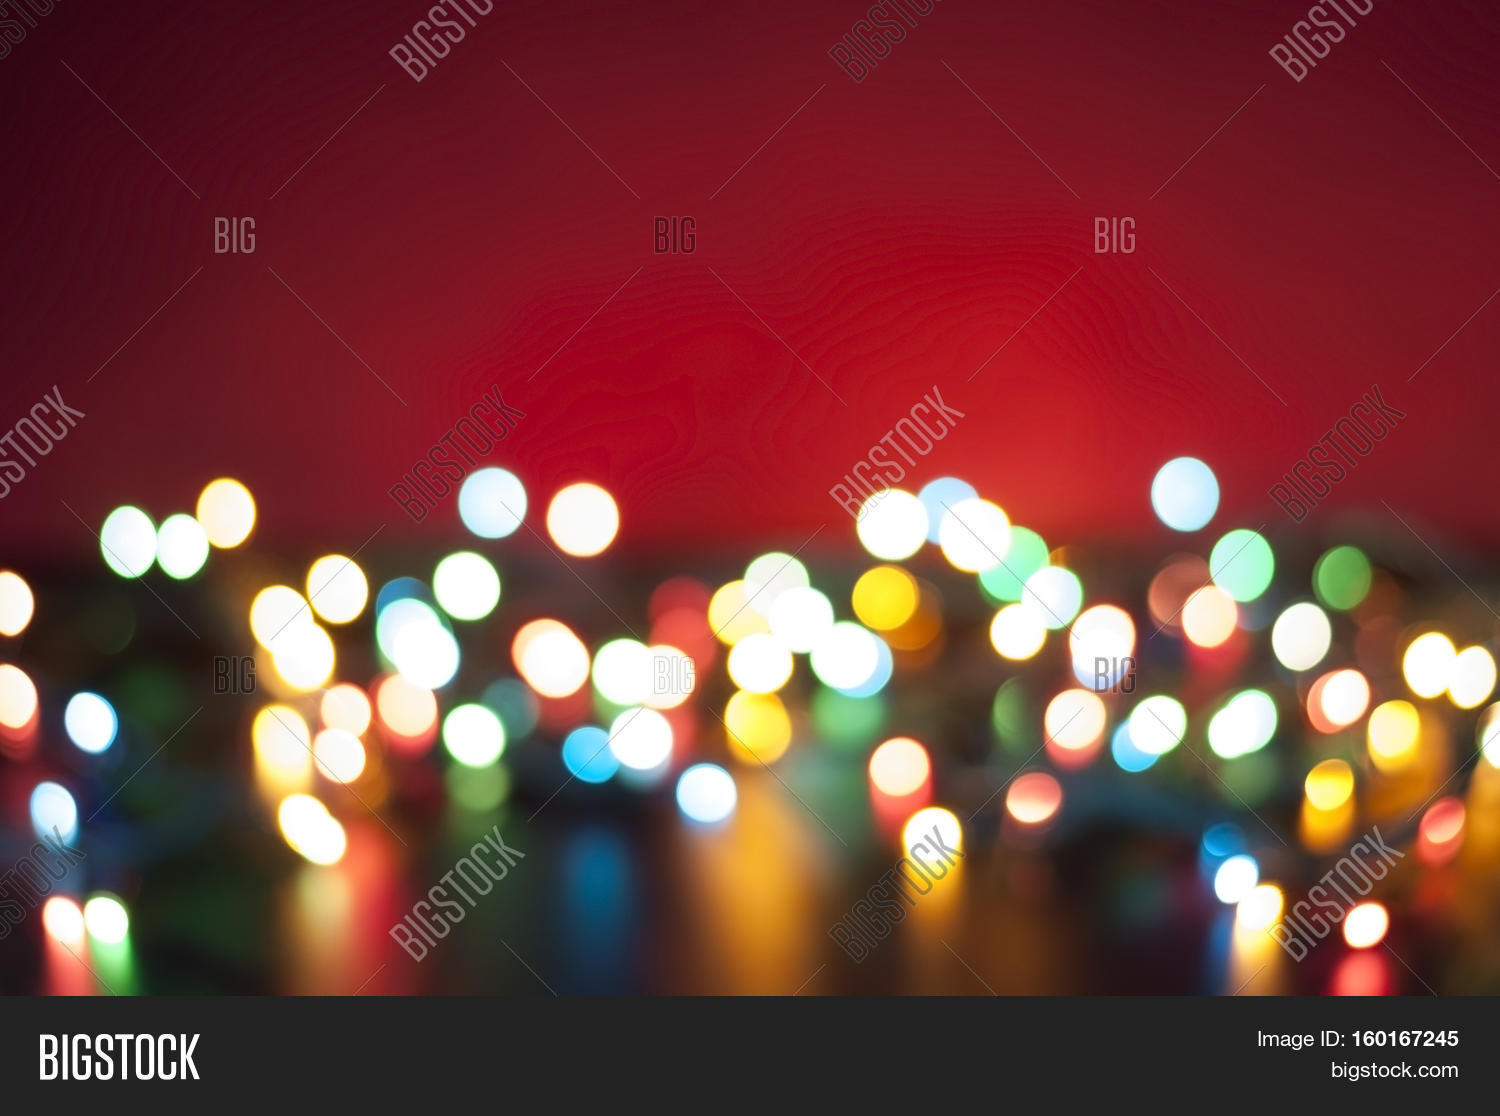 Abstract multicolored light. Blur spot light. Defocus colorful light.